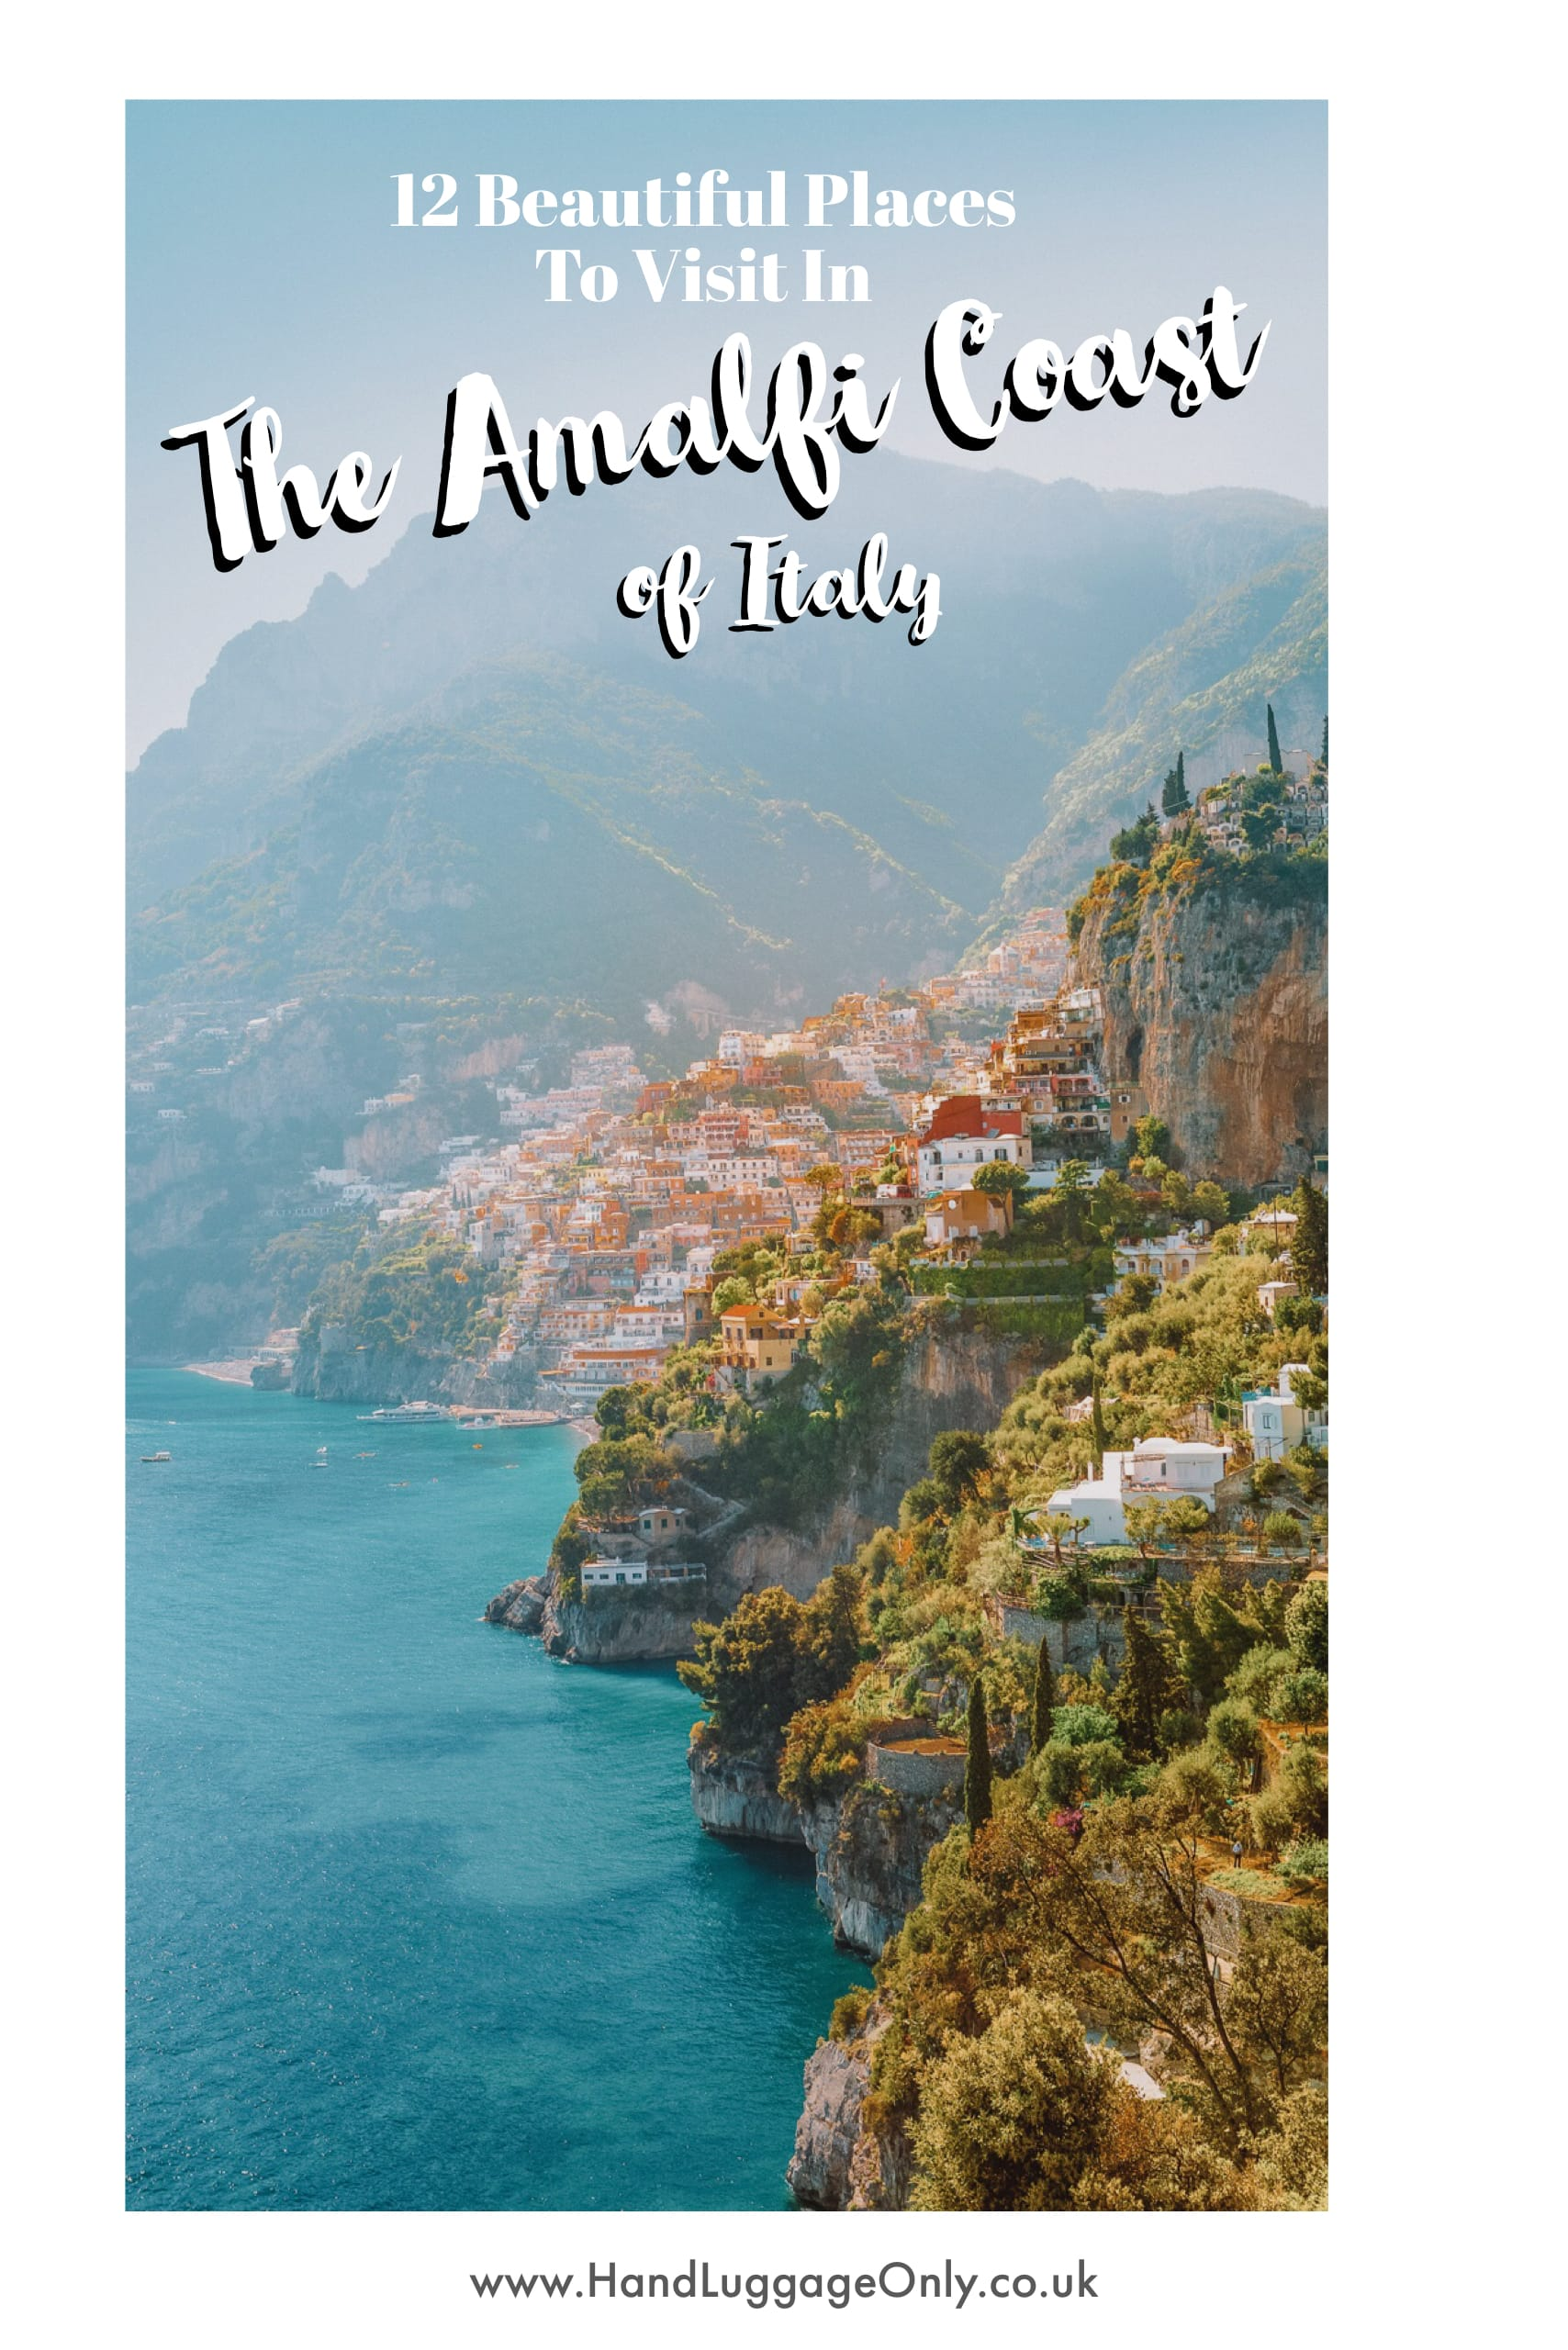 12 Beautiful Places In The Amalfi Coast Of Italy That You Have To Visit (1)